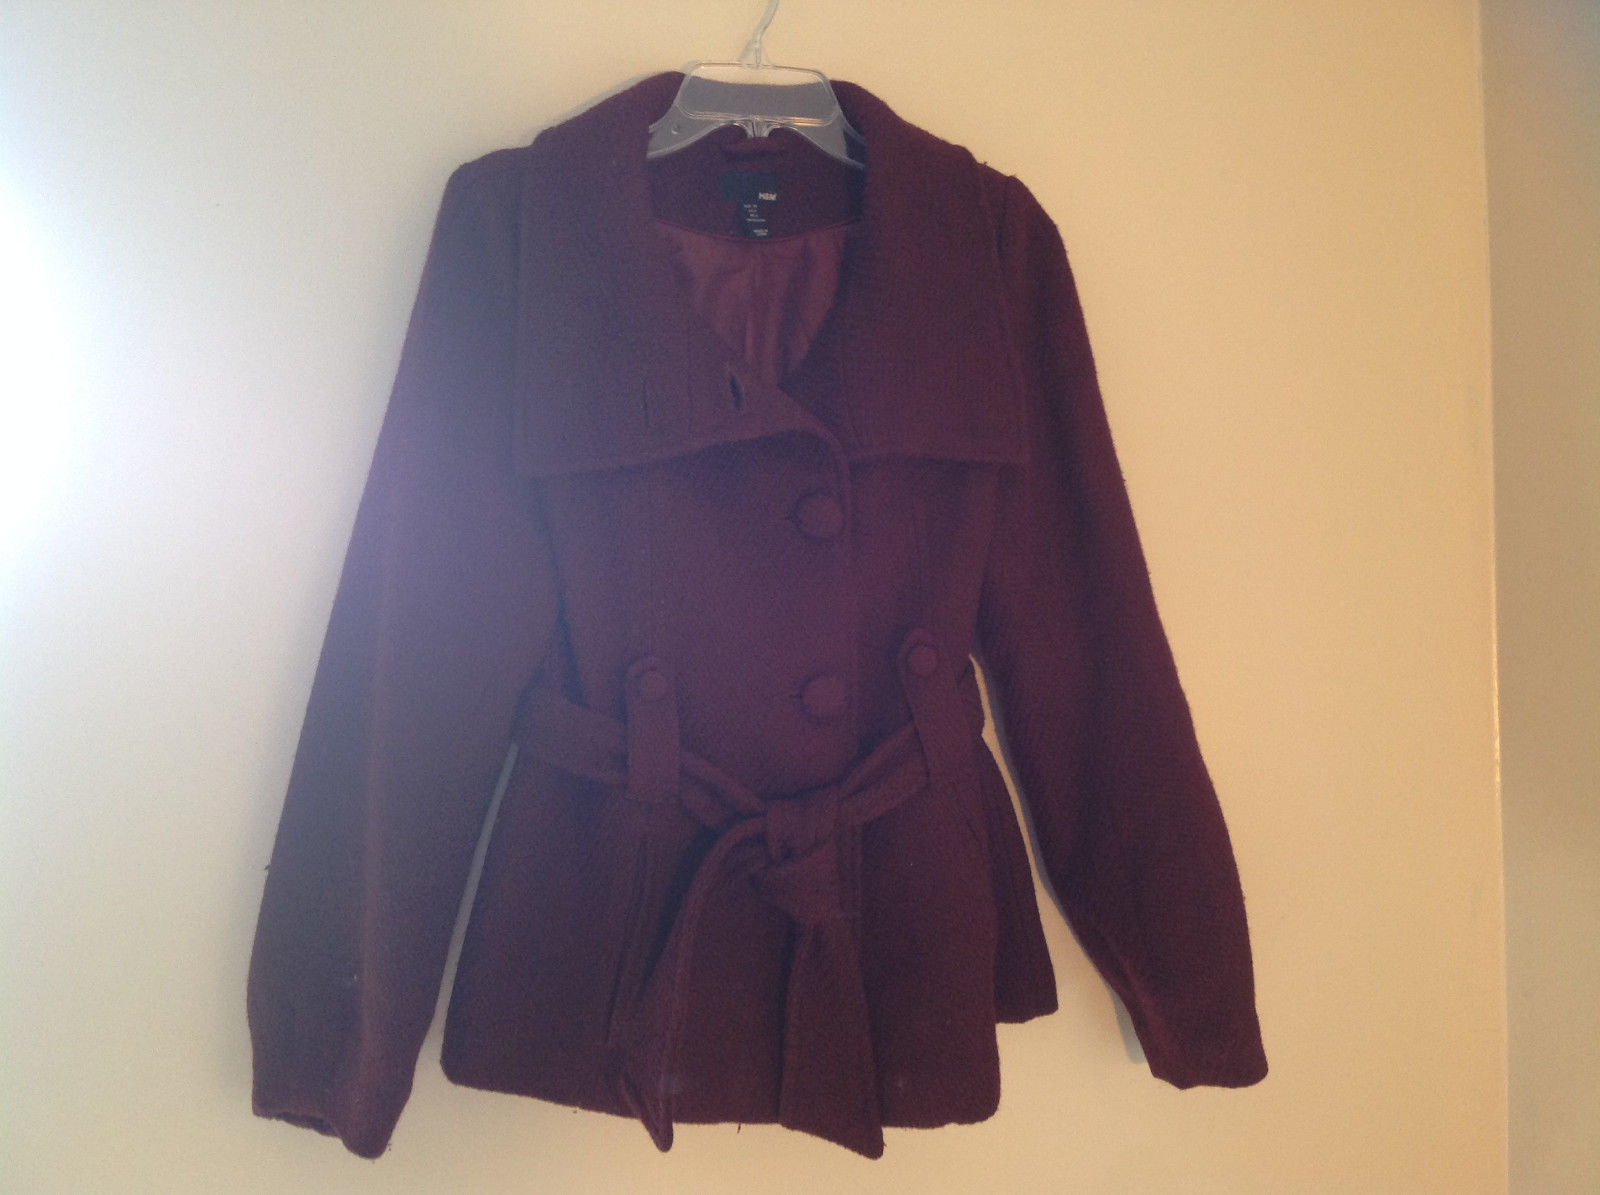 Adorable H and M Maroon Patterned Fabric Belted Peacoat Front Pockets Size 6